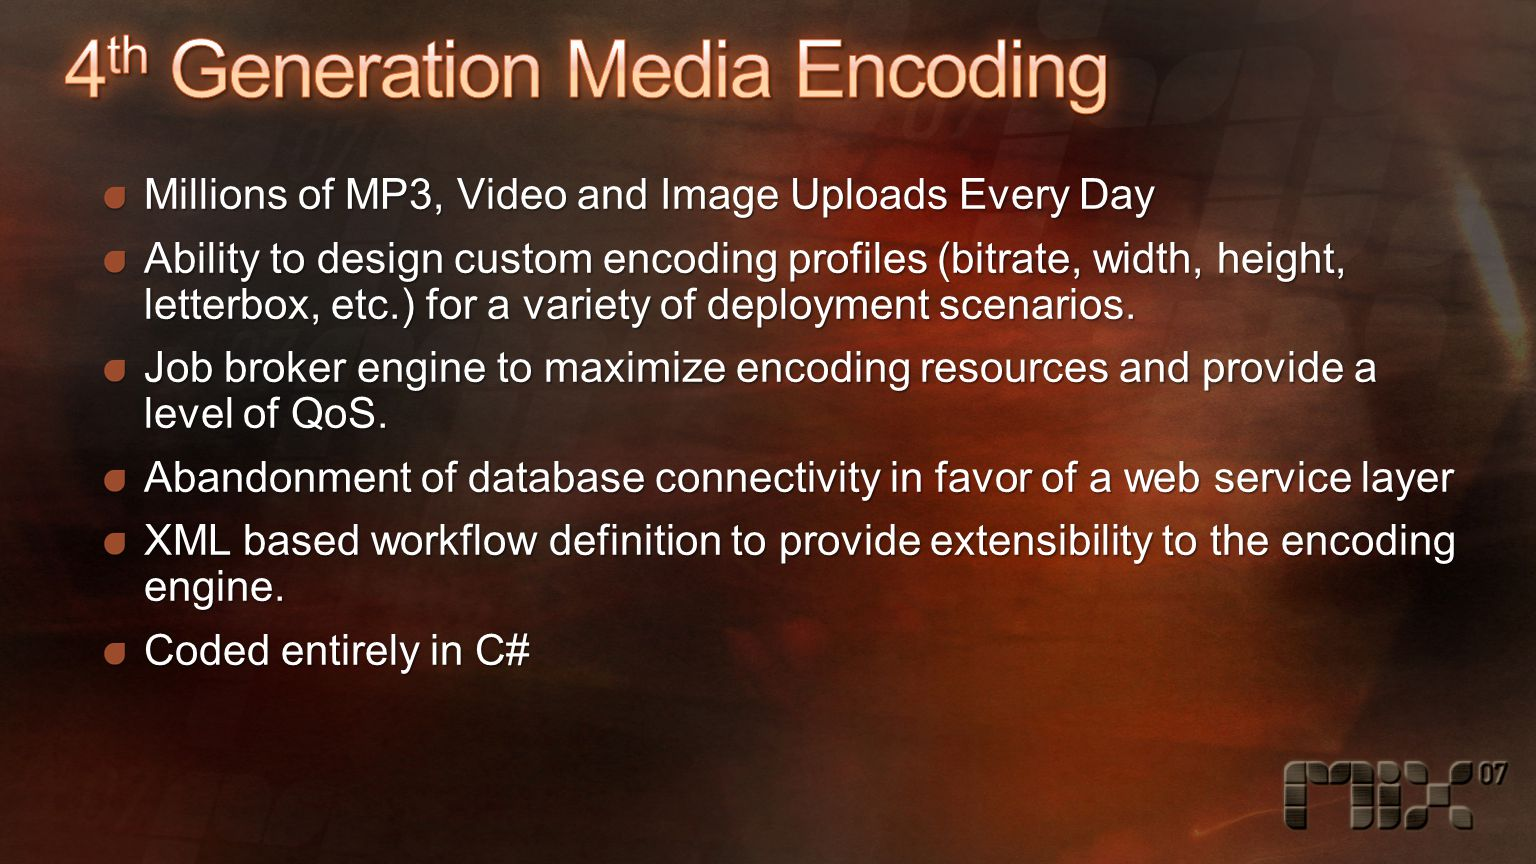 Millions of MP3, Video and Image Uploads Every Day Ability to design custom encoding profiles (bitrate, width, height, letterbox, etc.) for a variety of deployment scenarios.